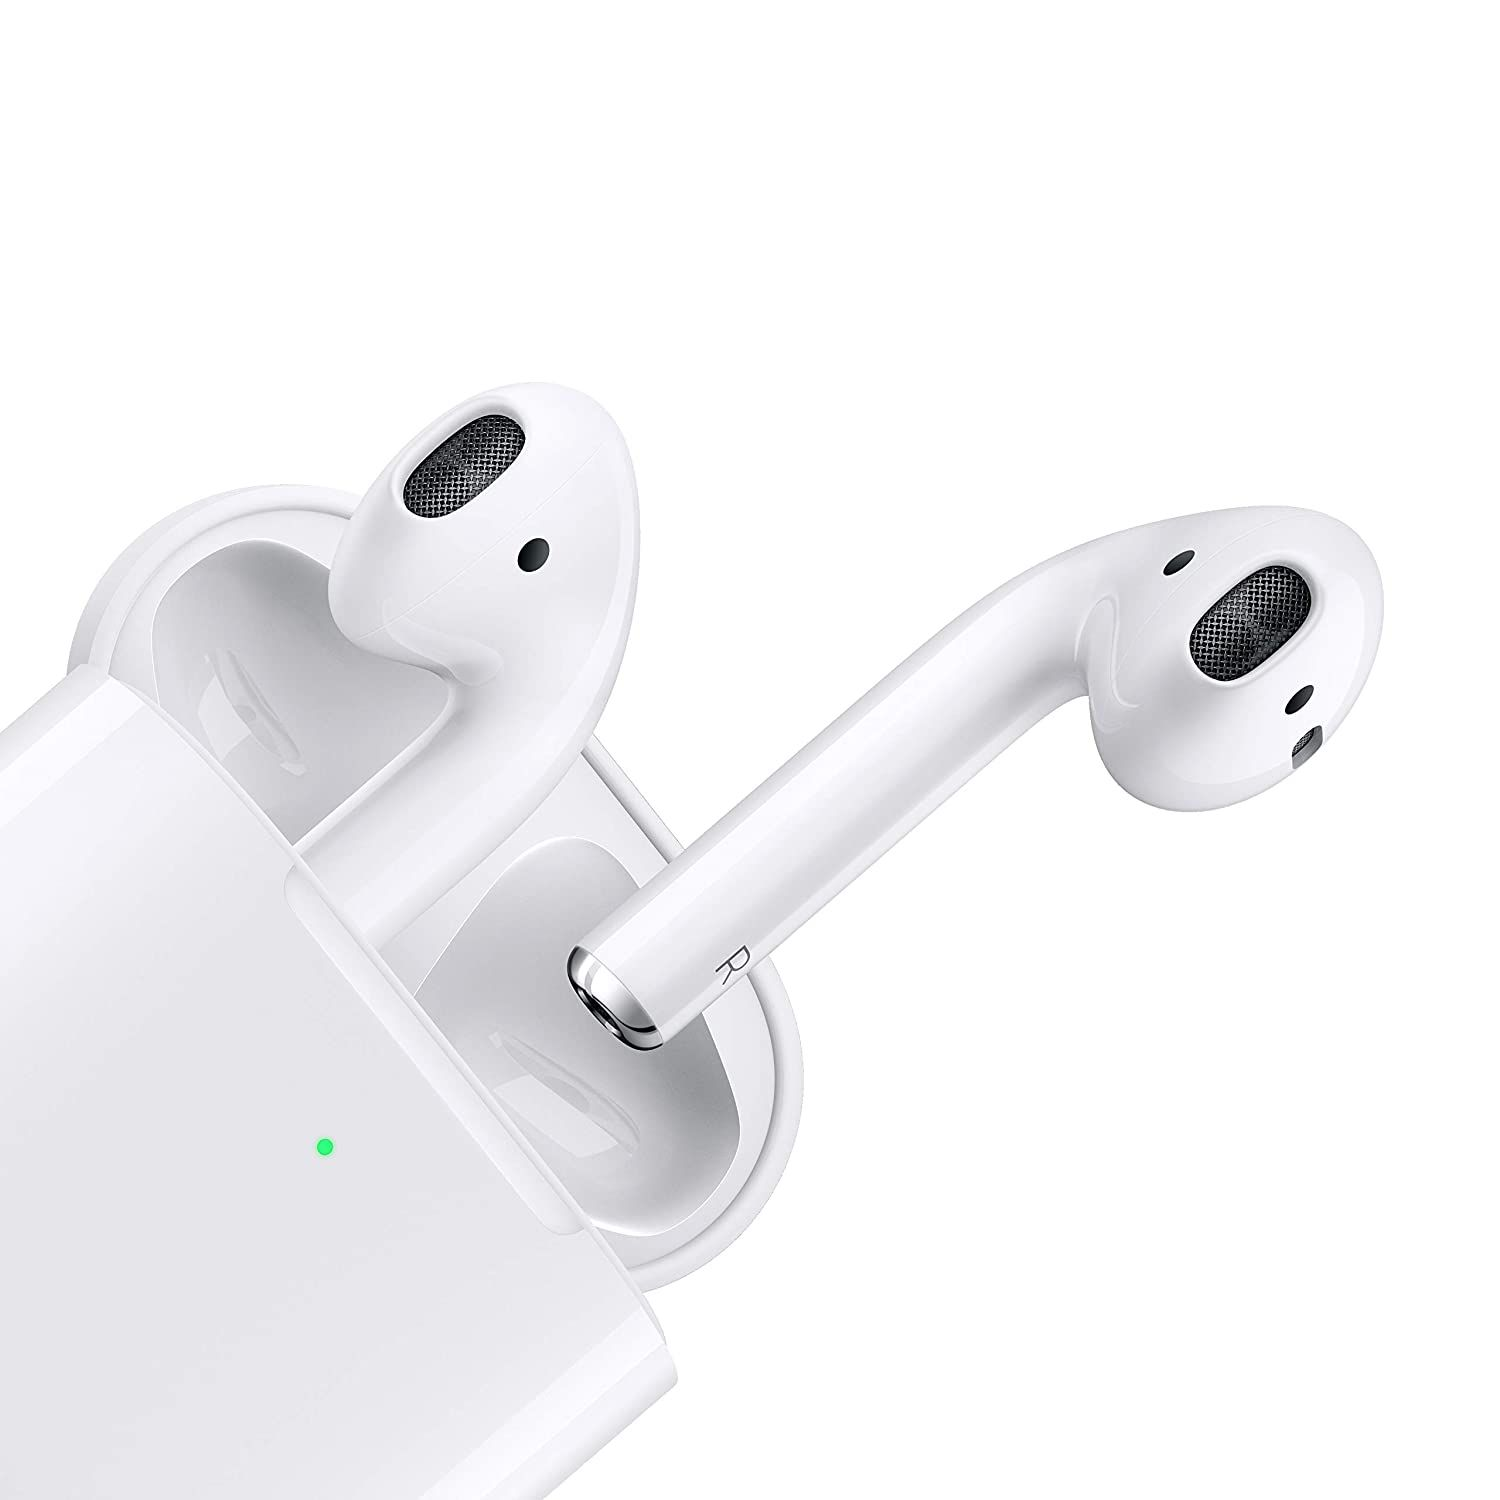 Going To The Gym Or Traveling Alone Without Music It Does Not Feel Fascinating Haha But Which Earbuds Are Suitabl Apple Airpods 2 Apple Air Wireless Earbuds